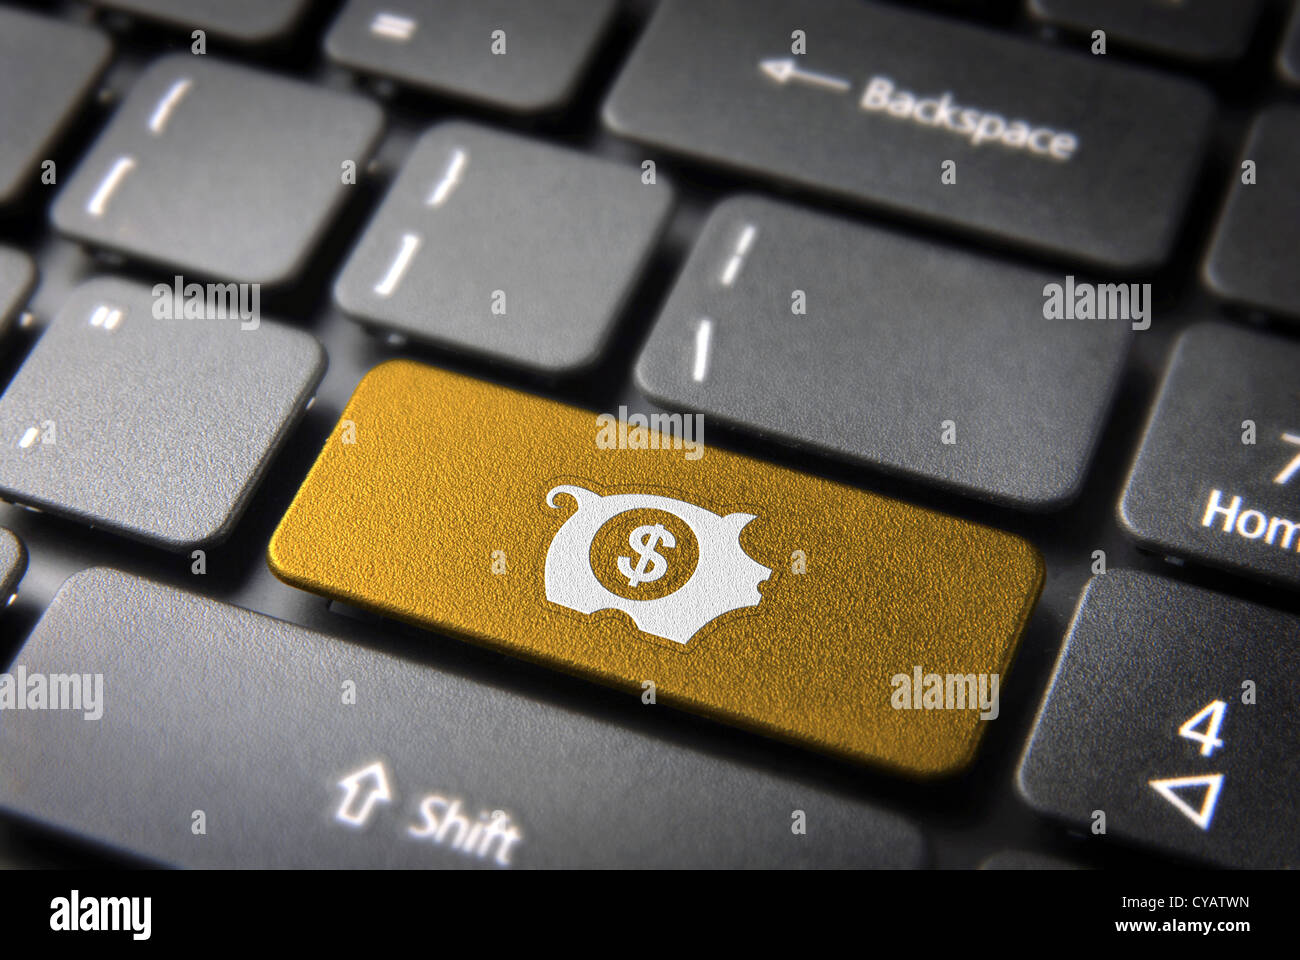 Make money with internet: golden key with piggy bank icon on laptop keyboard. Included clipping path, so you can Stock Photo